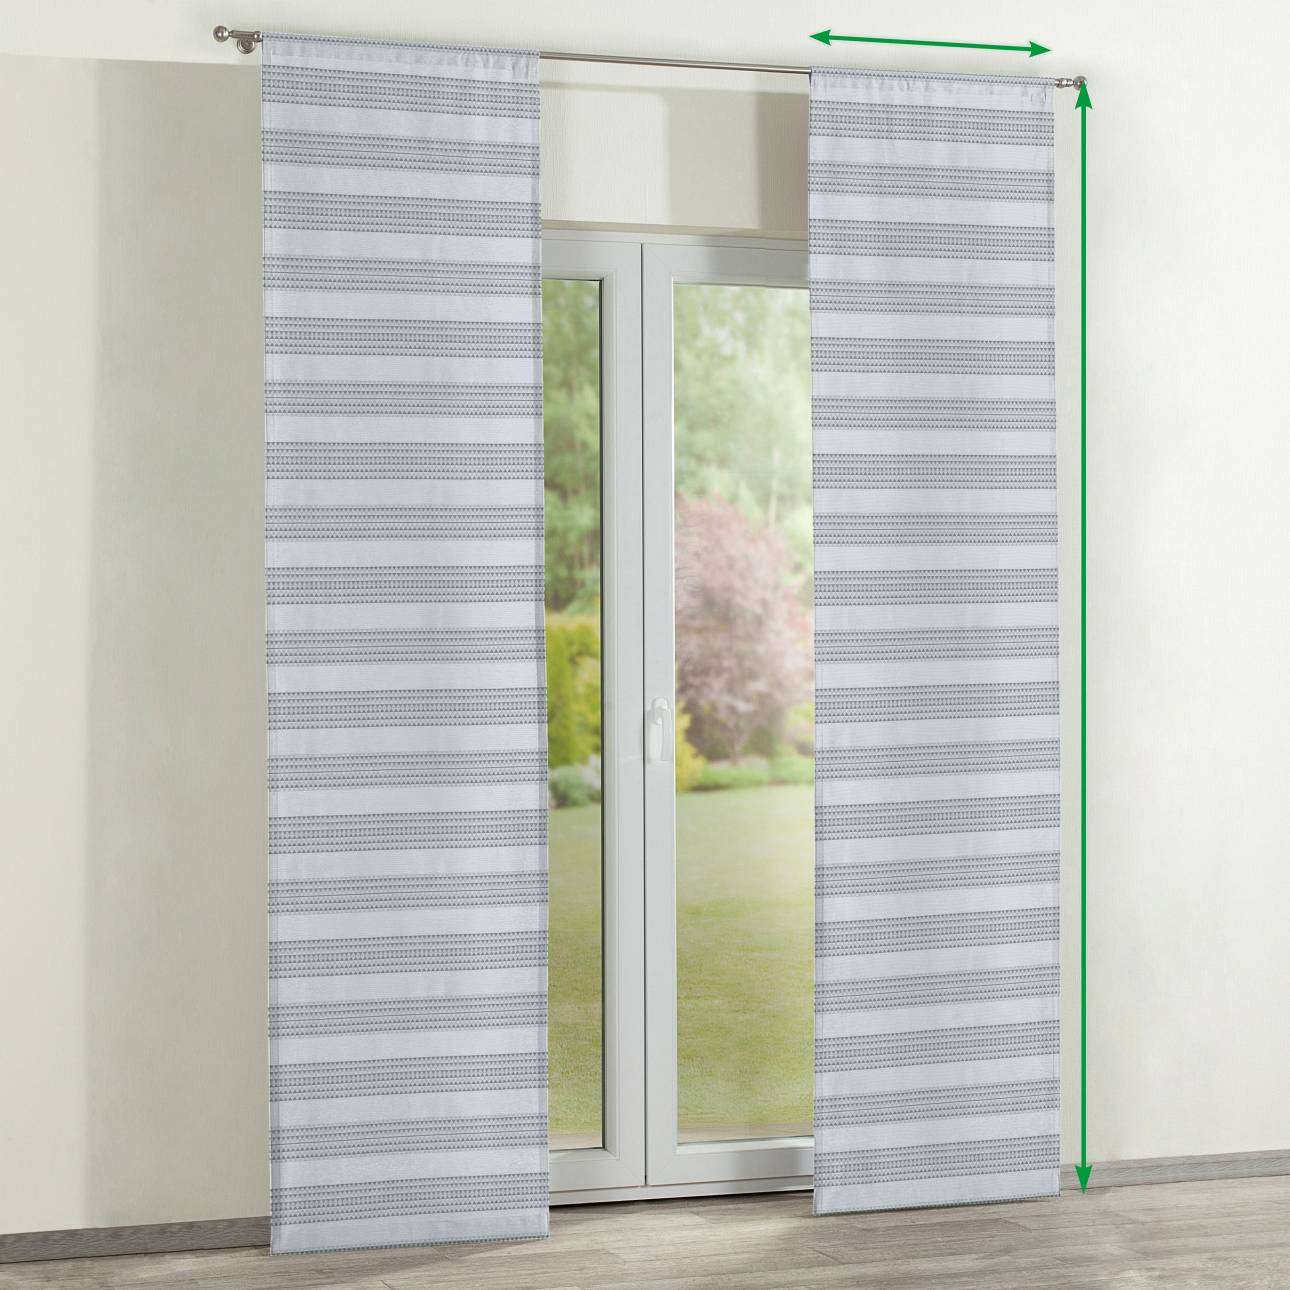 Slot panel curtains – Set of 2 in collection Rustica, fabric: 140-32